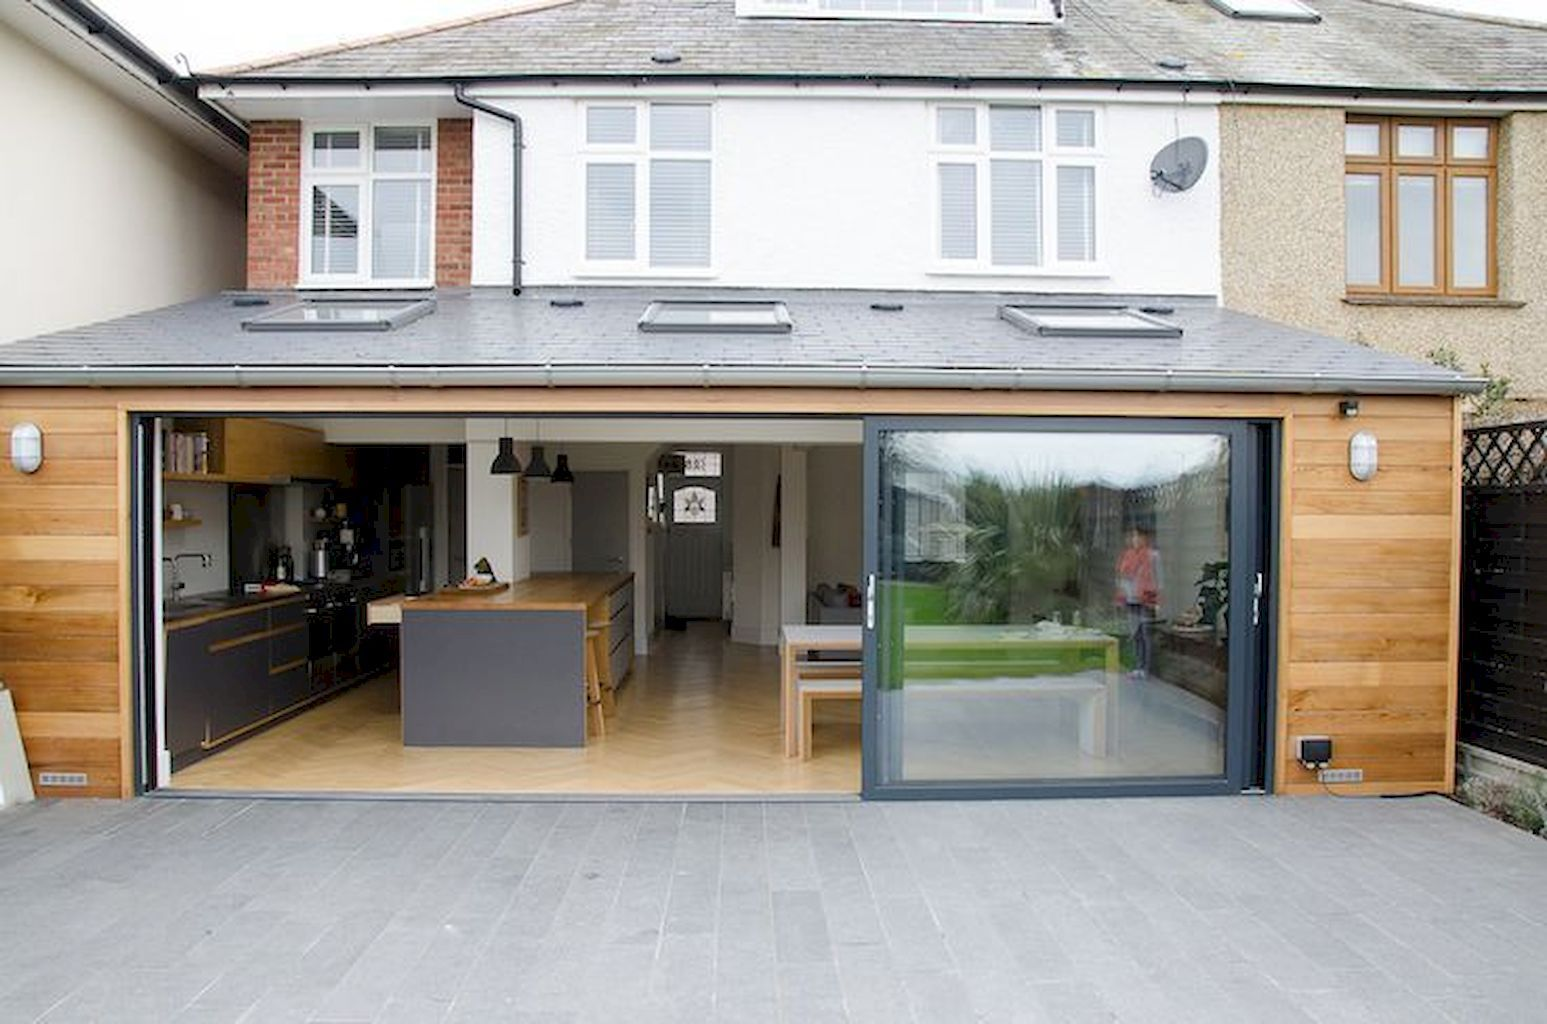 Simply Control and Monitor Your Enjoyable Smart Home - Home of Pondo - Home Design #homeextensions